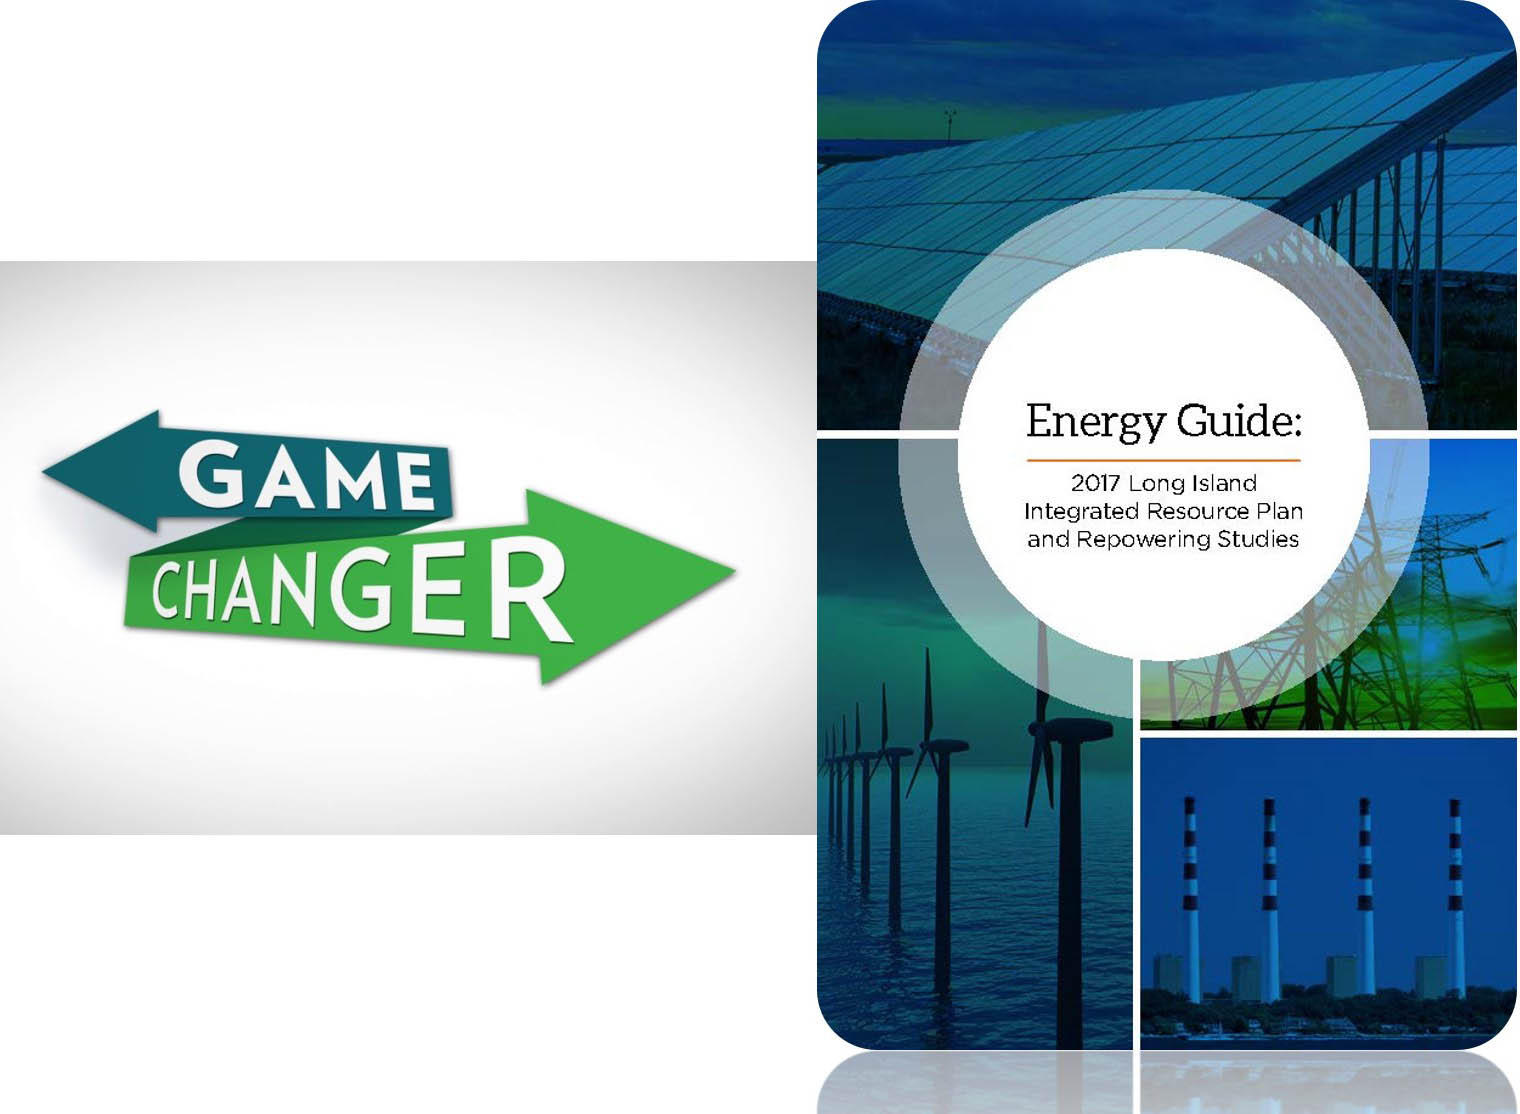 LIPA Energy Guide image